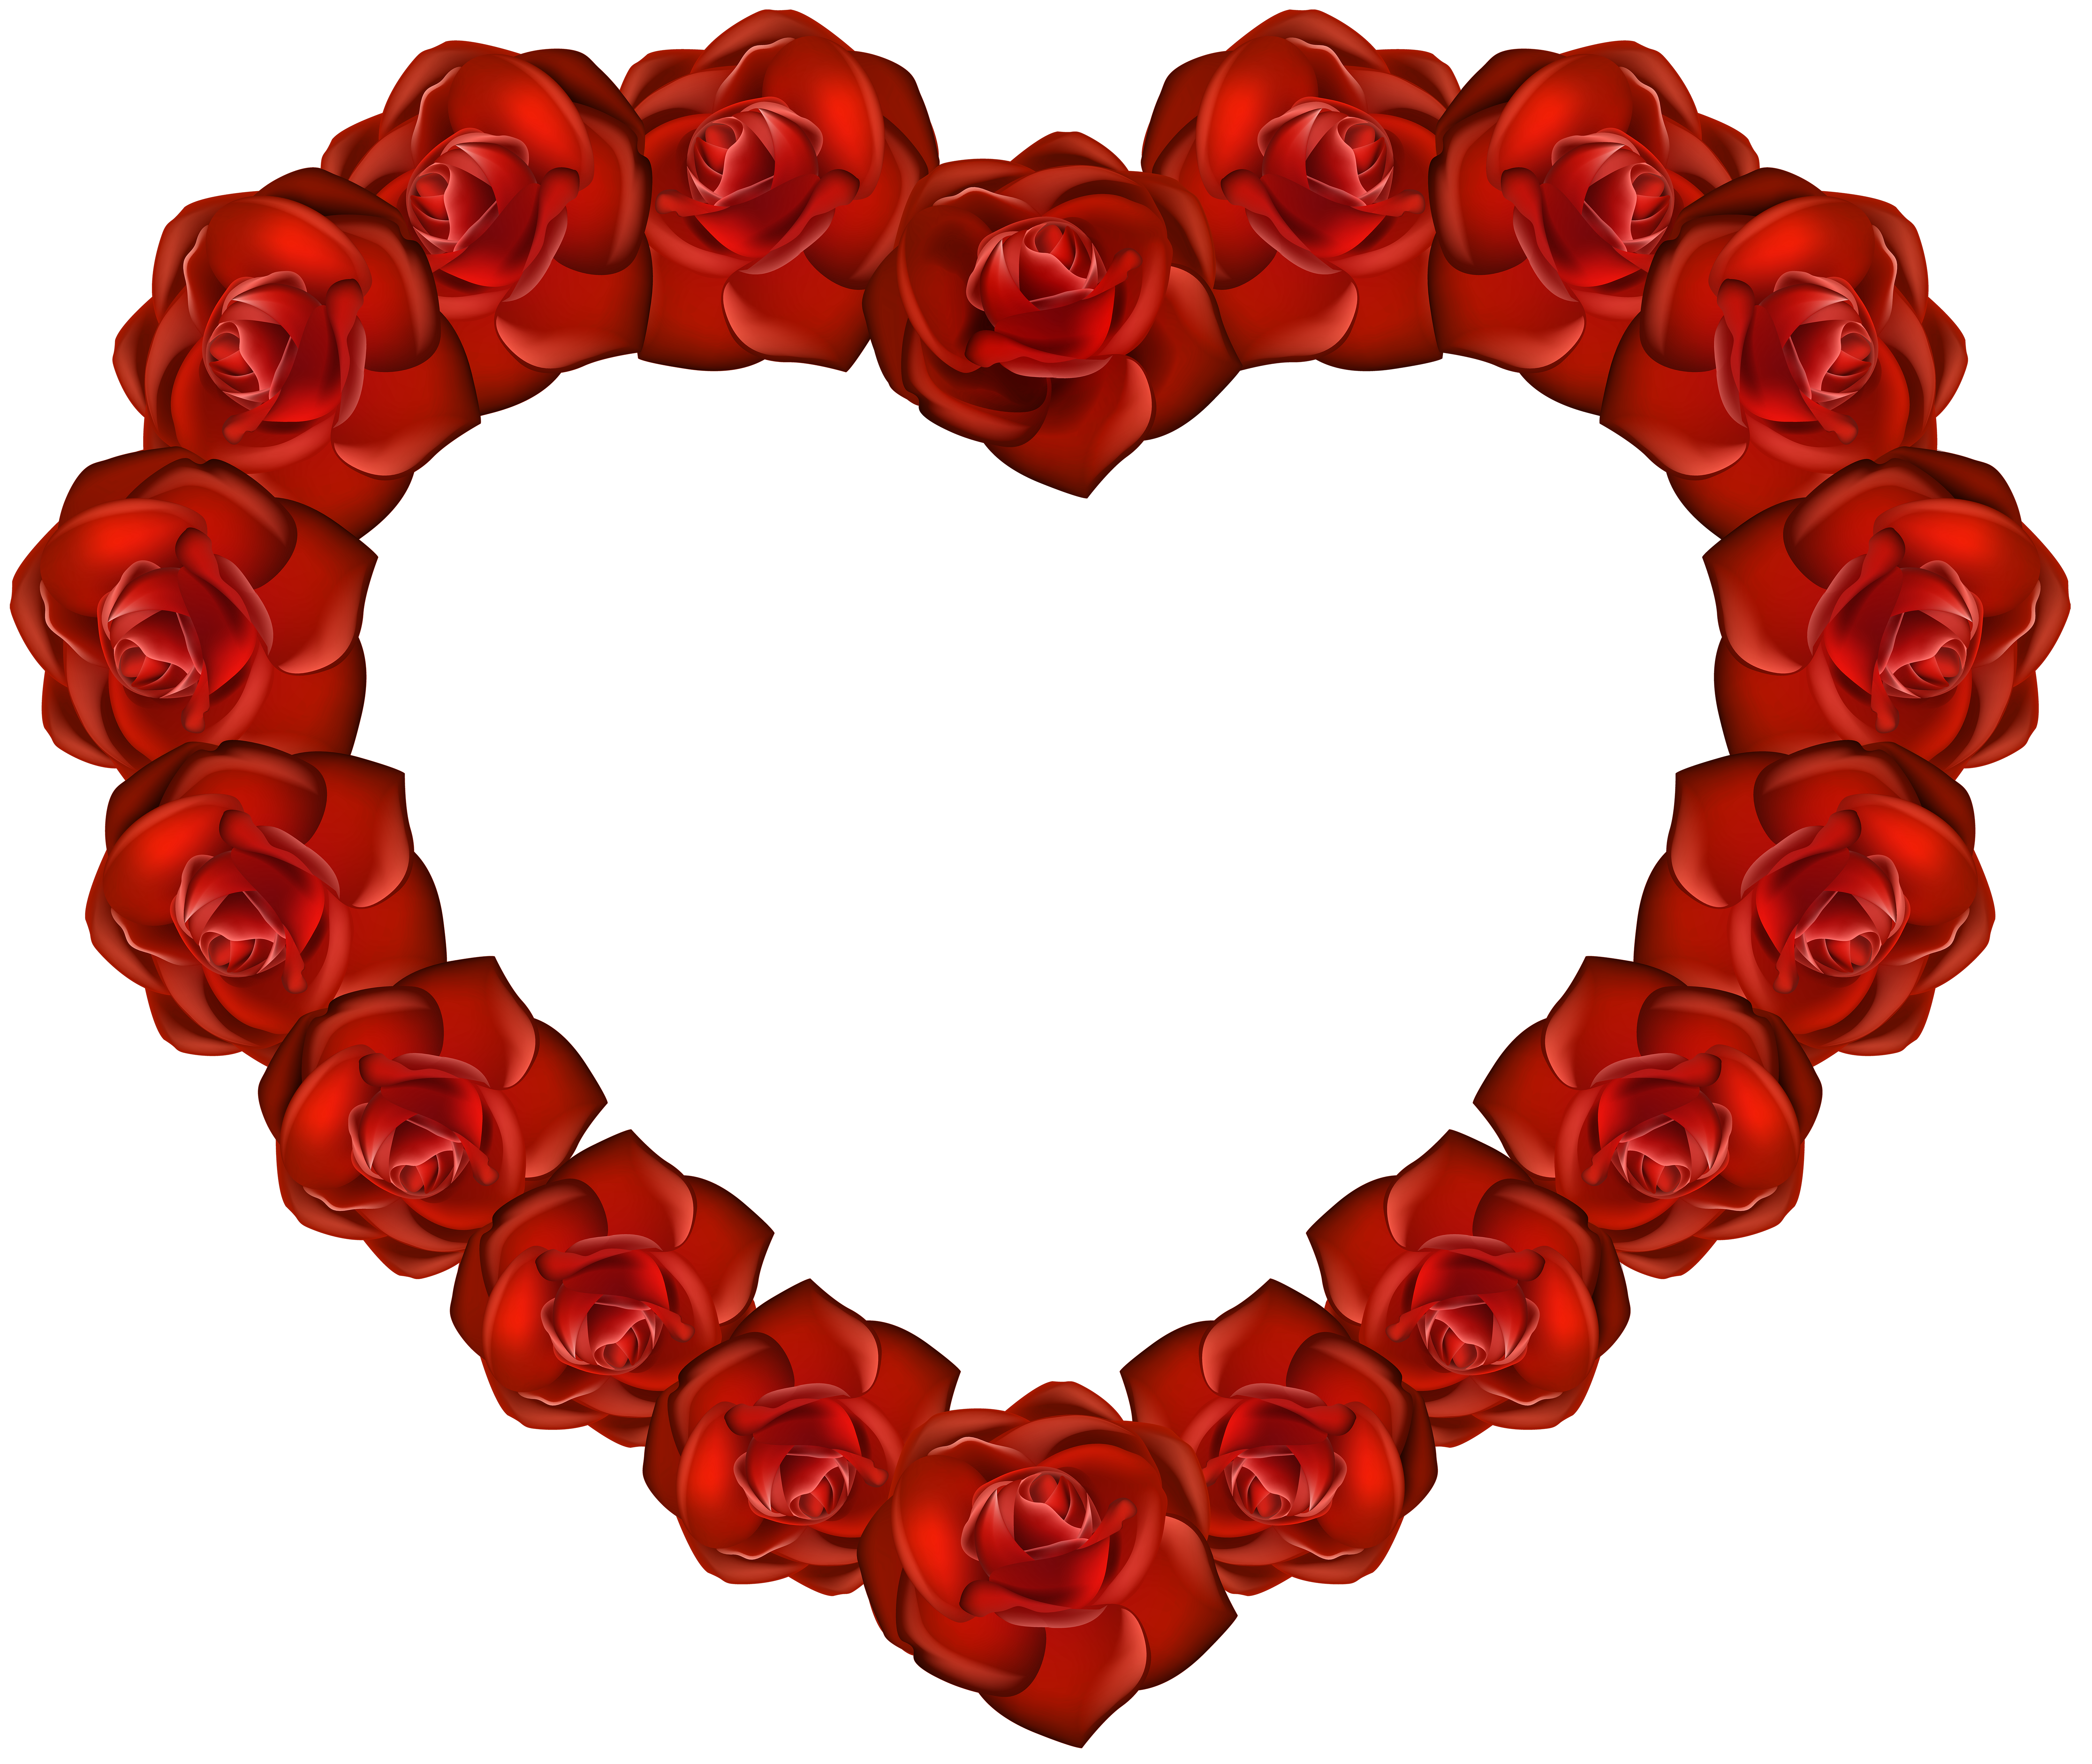 Family clipart valentines. Day for kids at